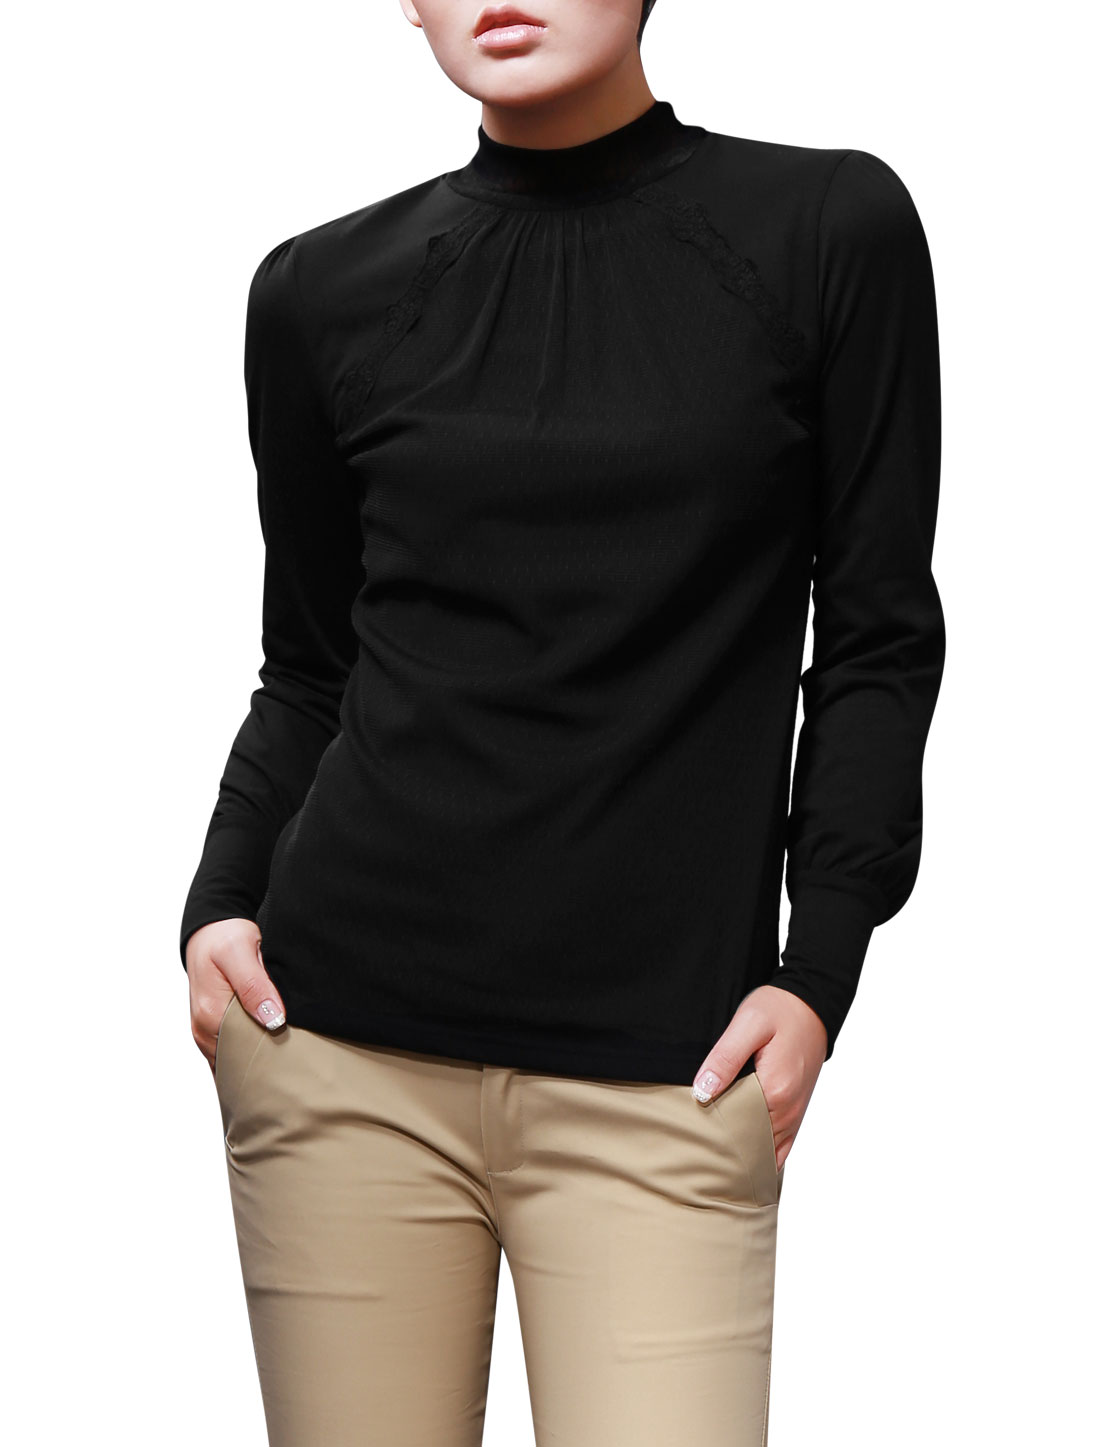 Lady Black Mesh Splice Design Solid Color Femimine Design Casual Top Shirt XS